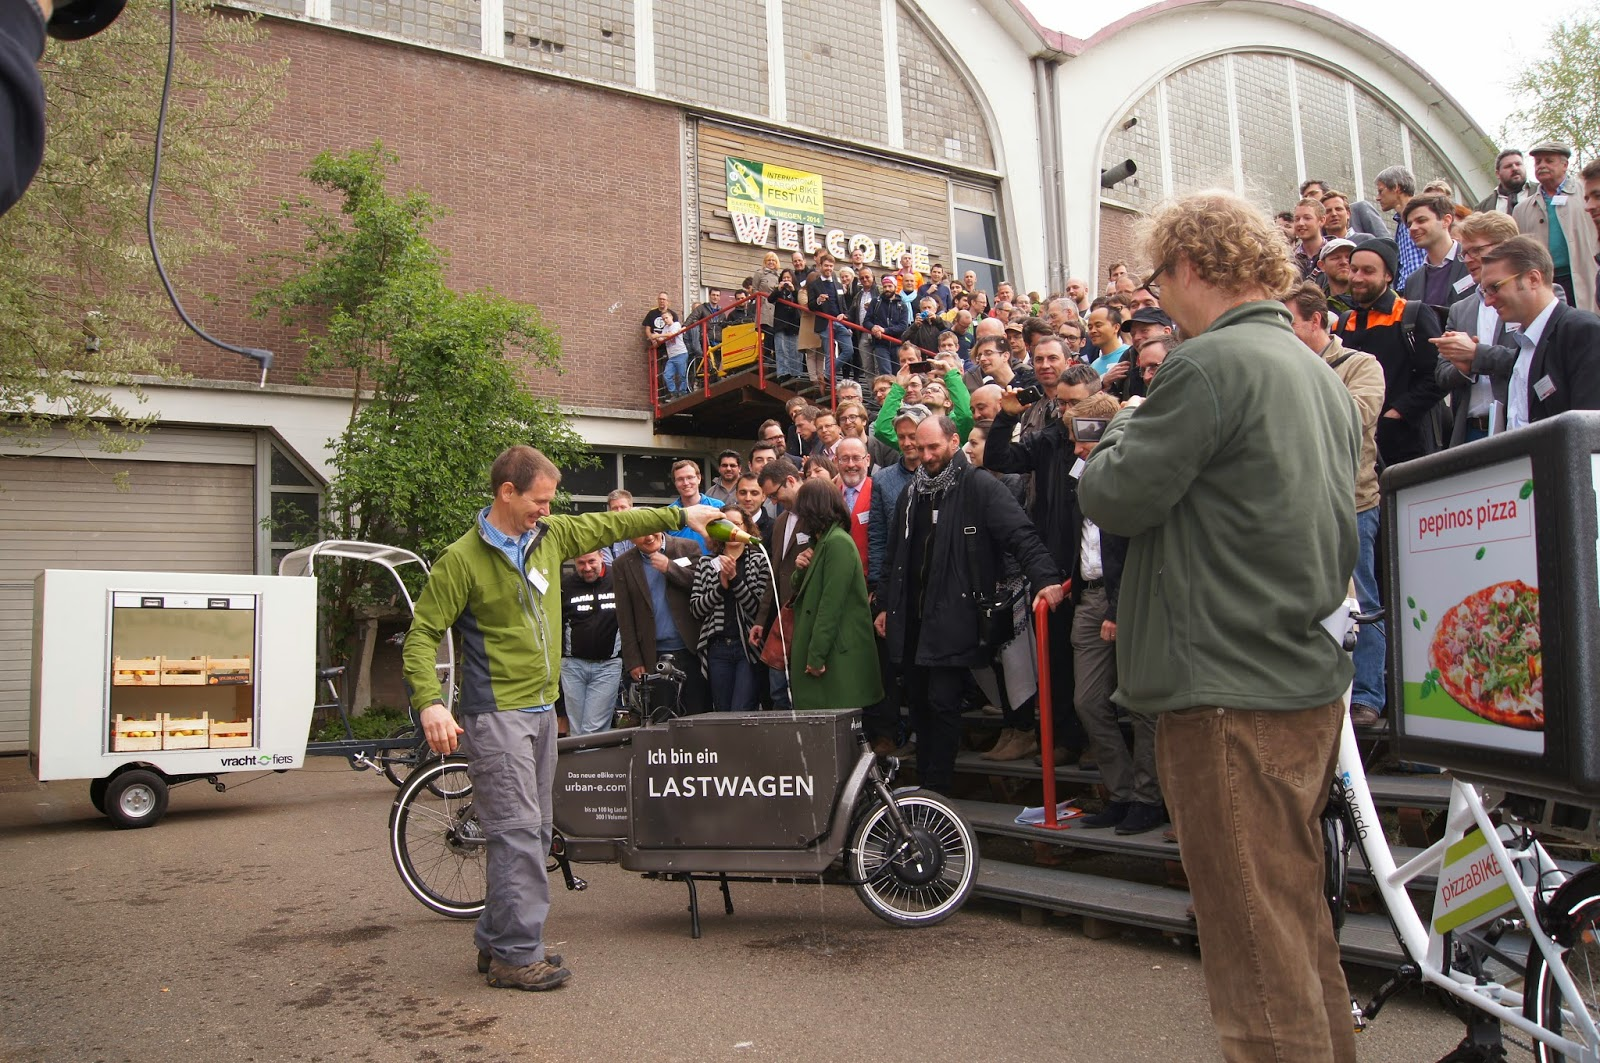 http://www.ecf.com/press_release/its-boom-time-for-cargo-bikes/